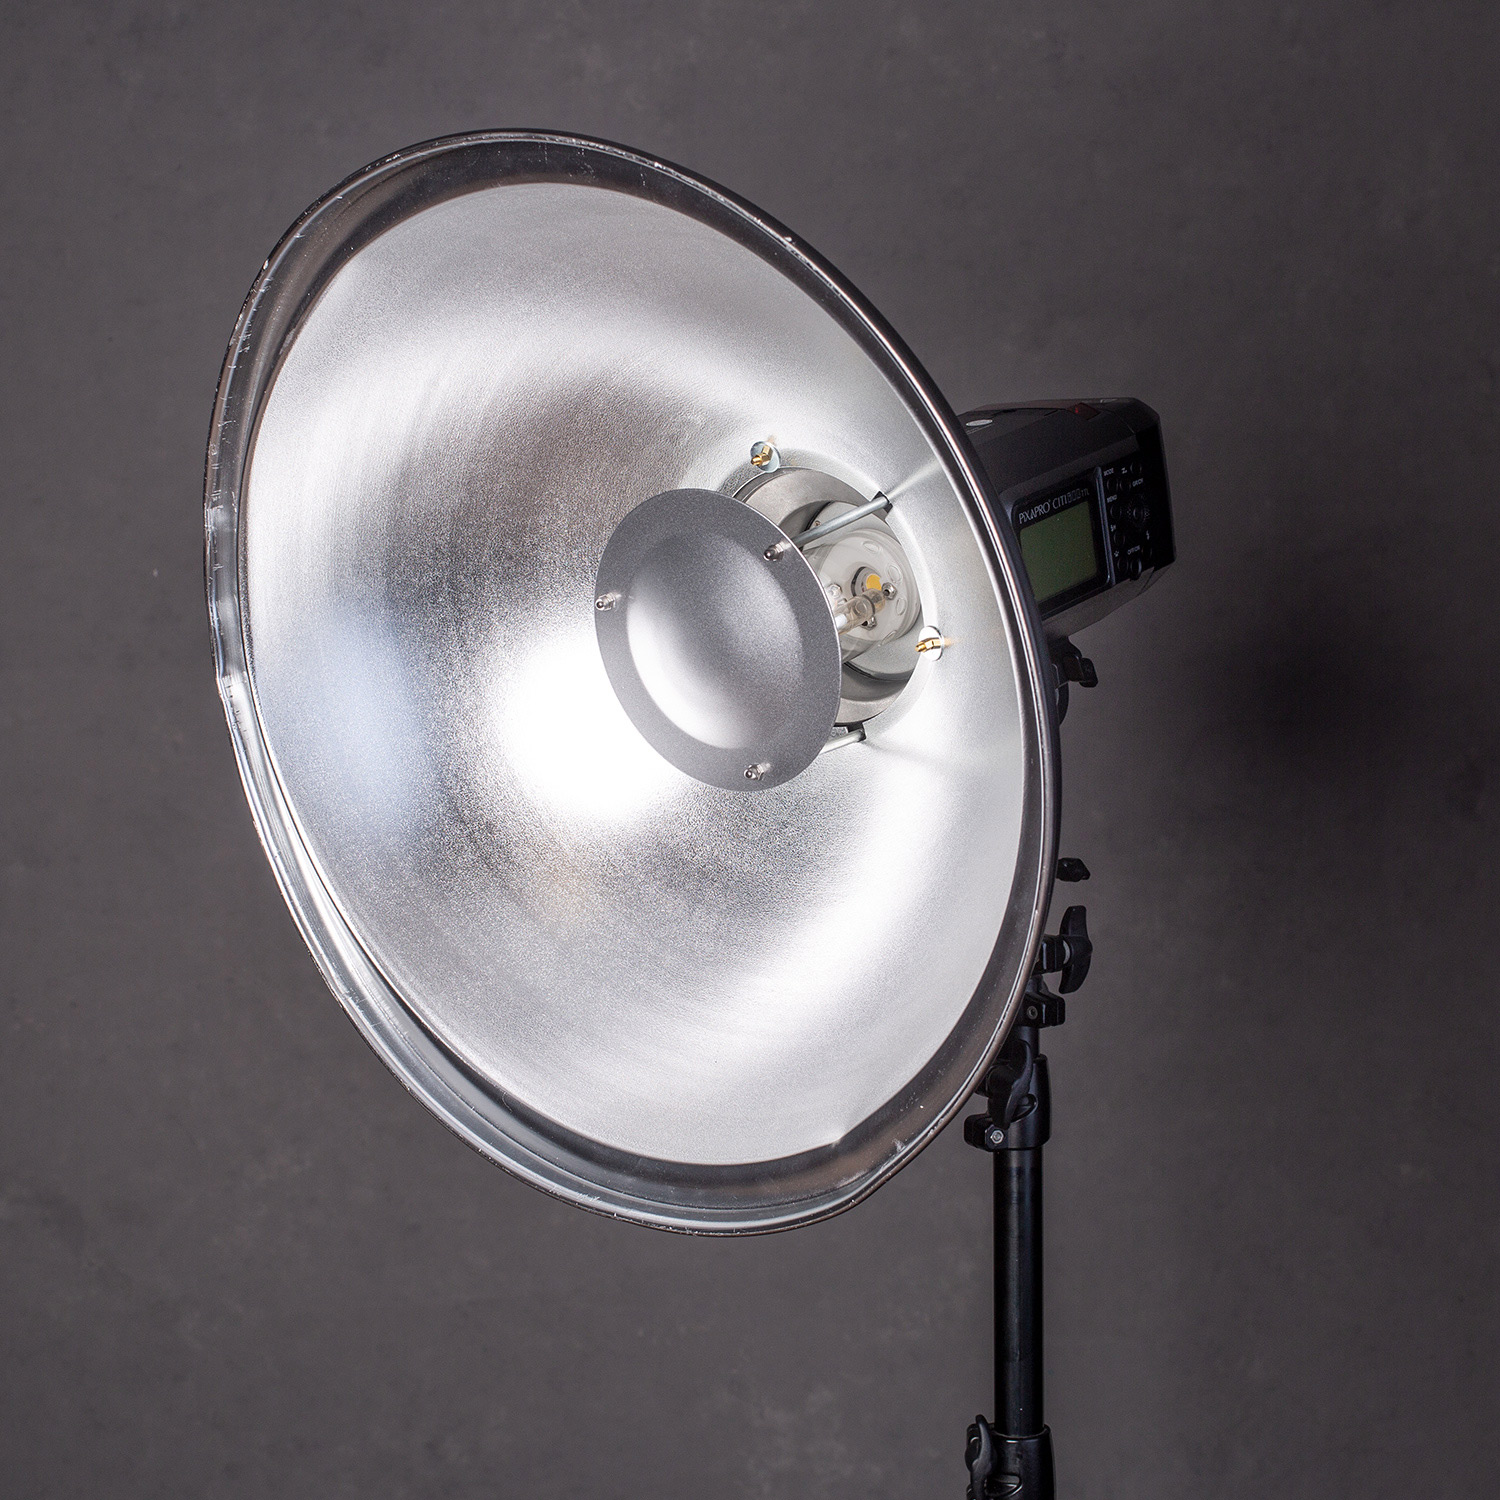 beauty dish for portrait photography